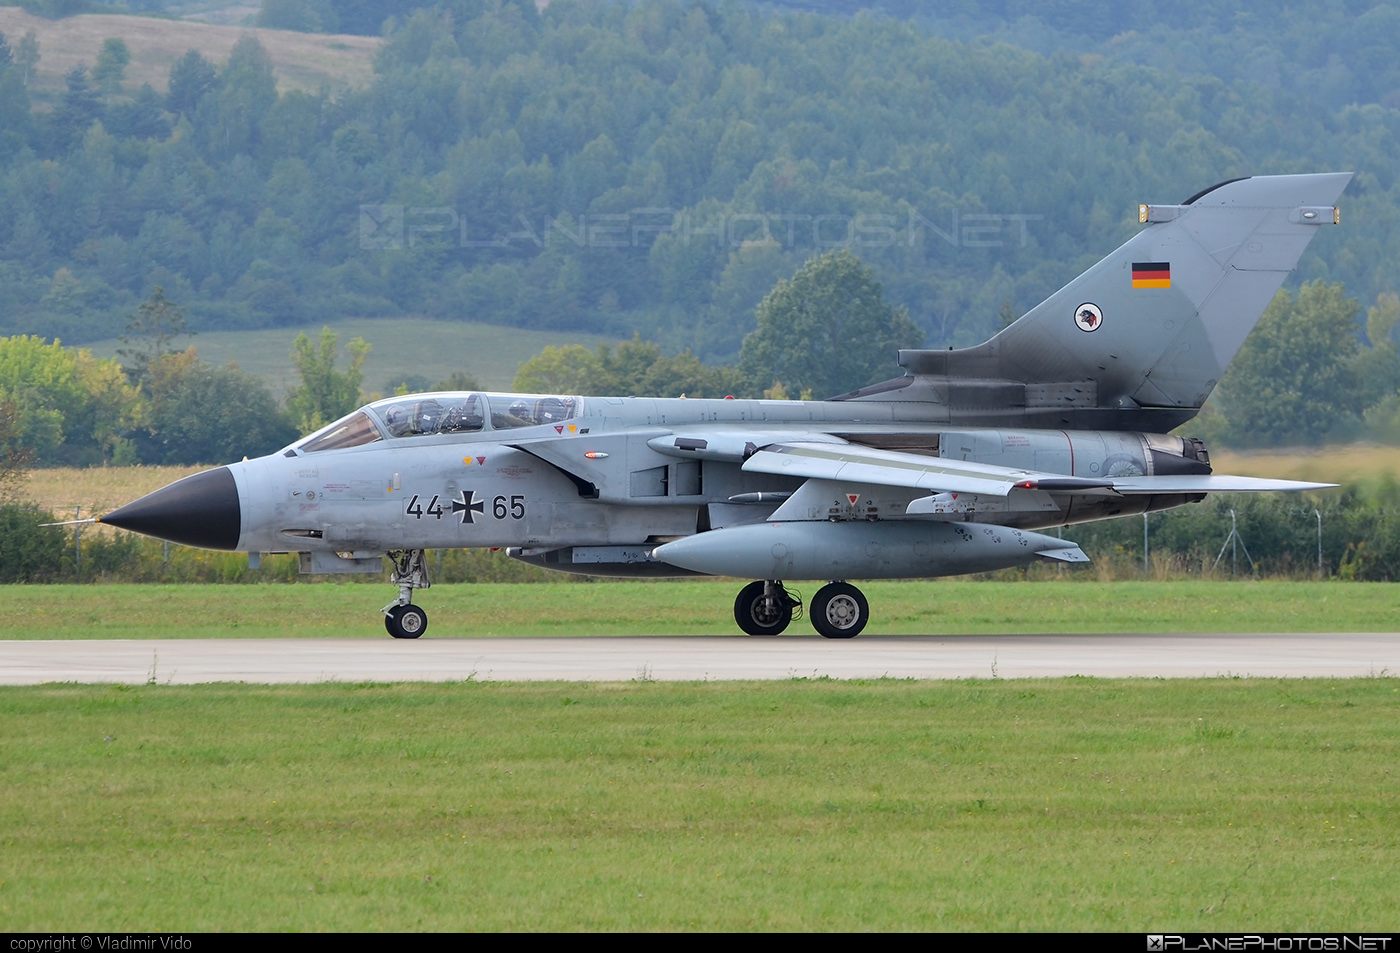 Panavia Tornado IDS - 44+65 operated by Luftwaffe (German Air Force) #panavia #panaviatornado #tornadoids